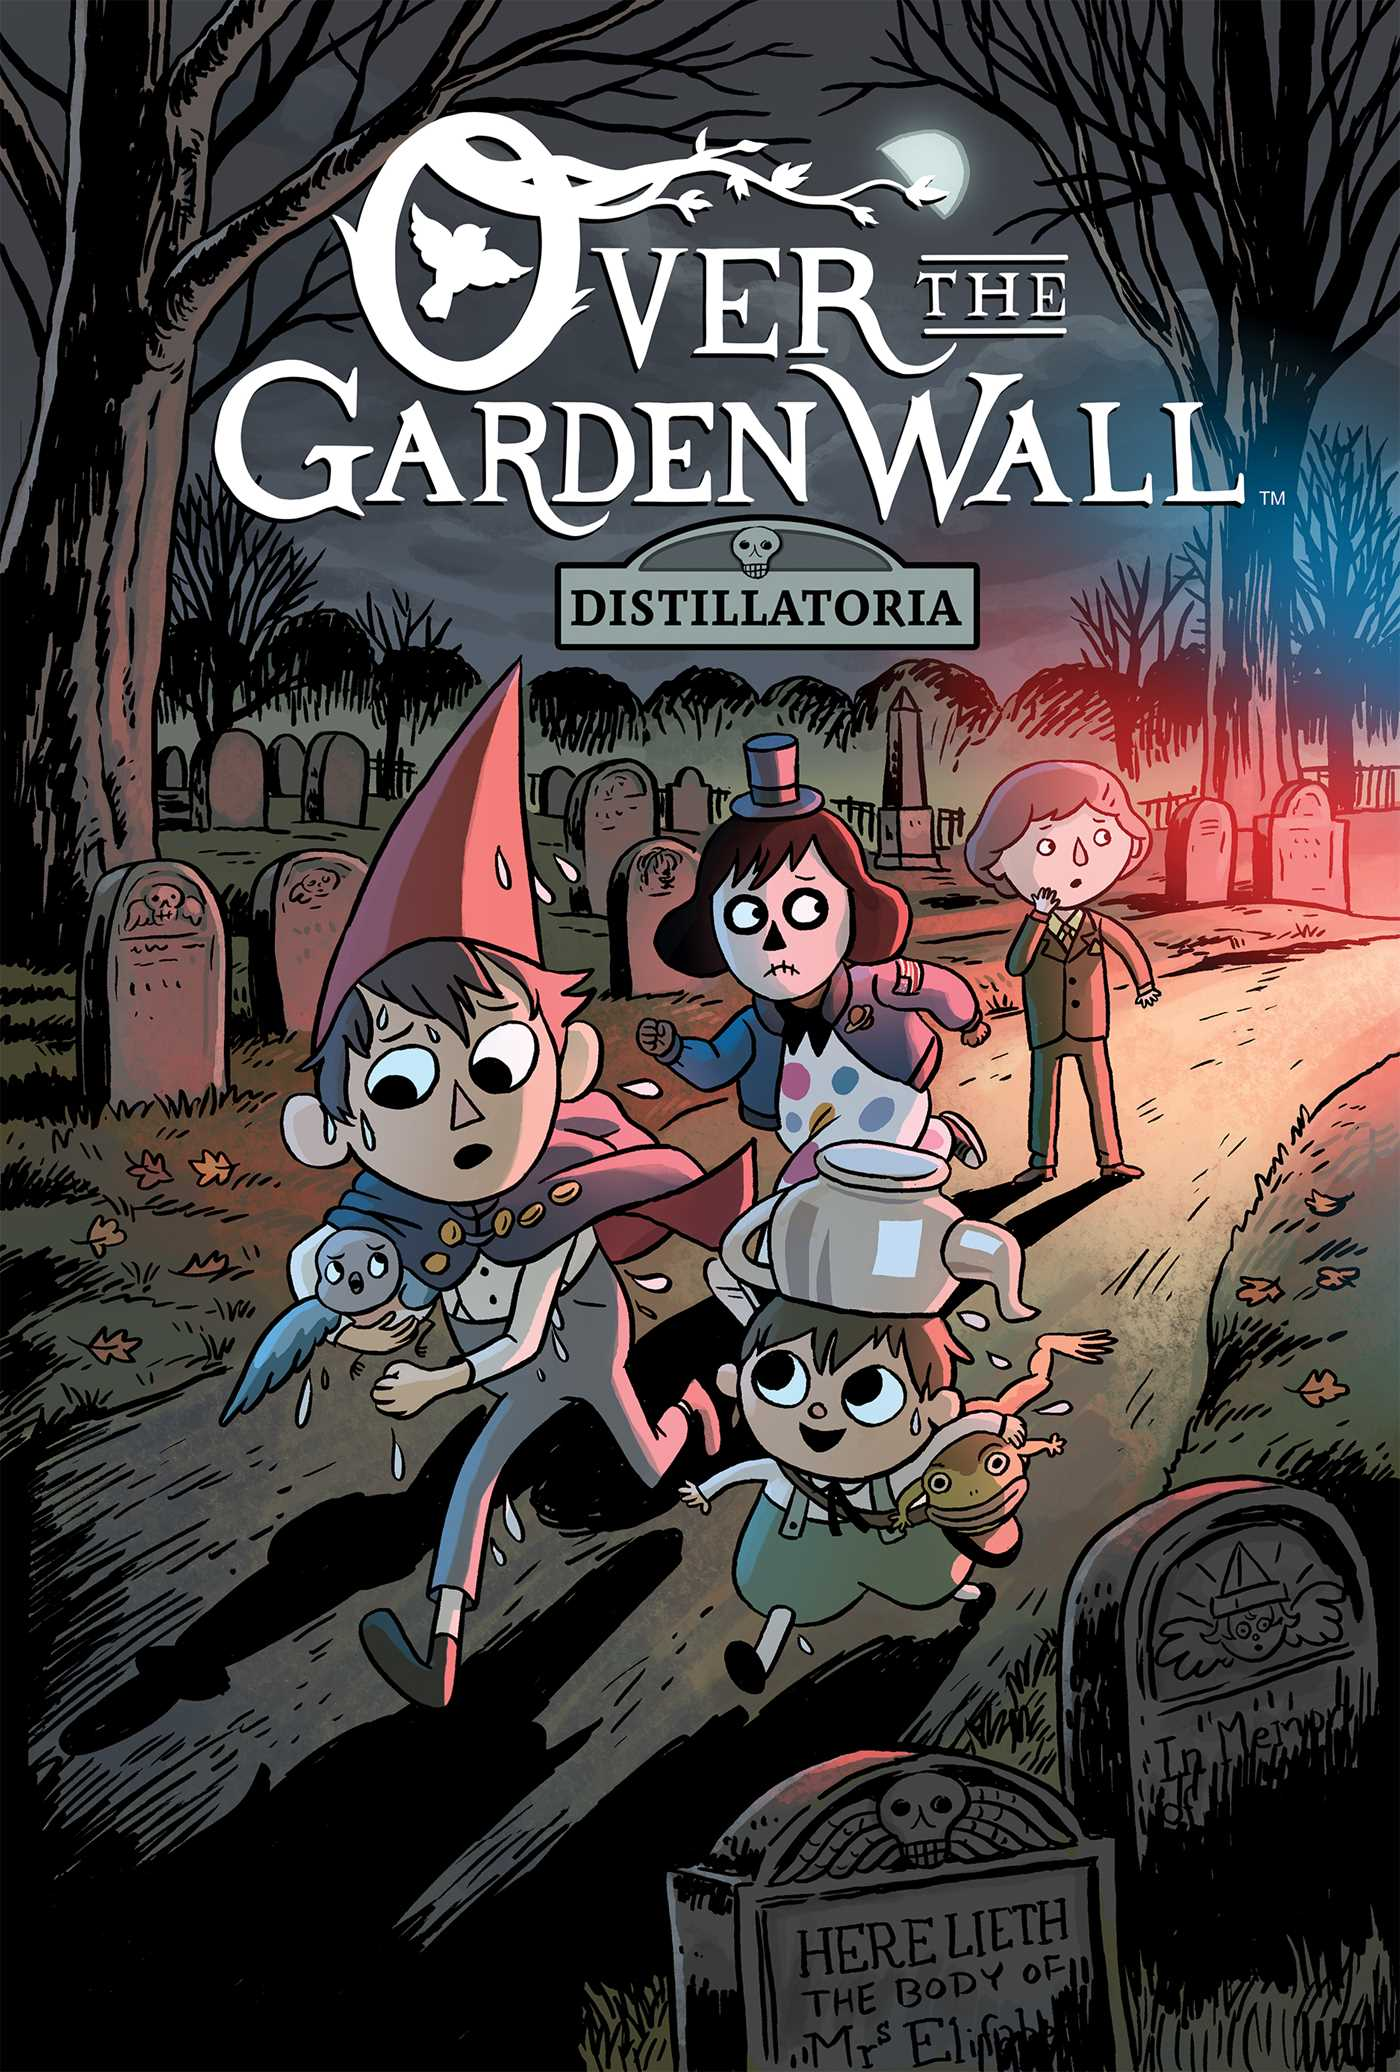 book cover image jpg over the garden wall original graphic novel distillatoria - Garden Wall